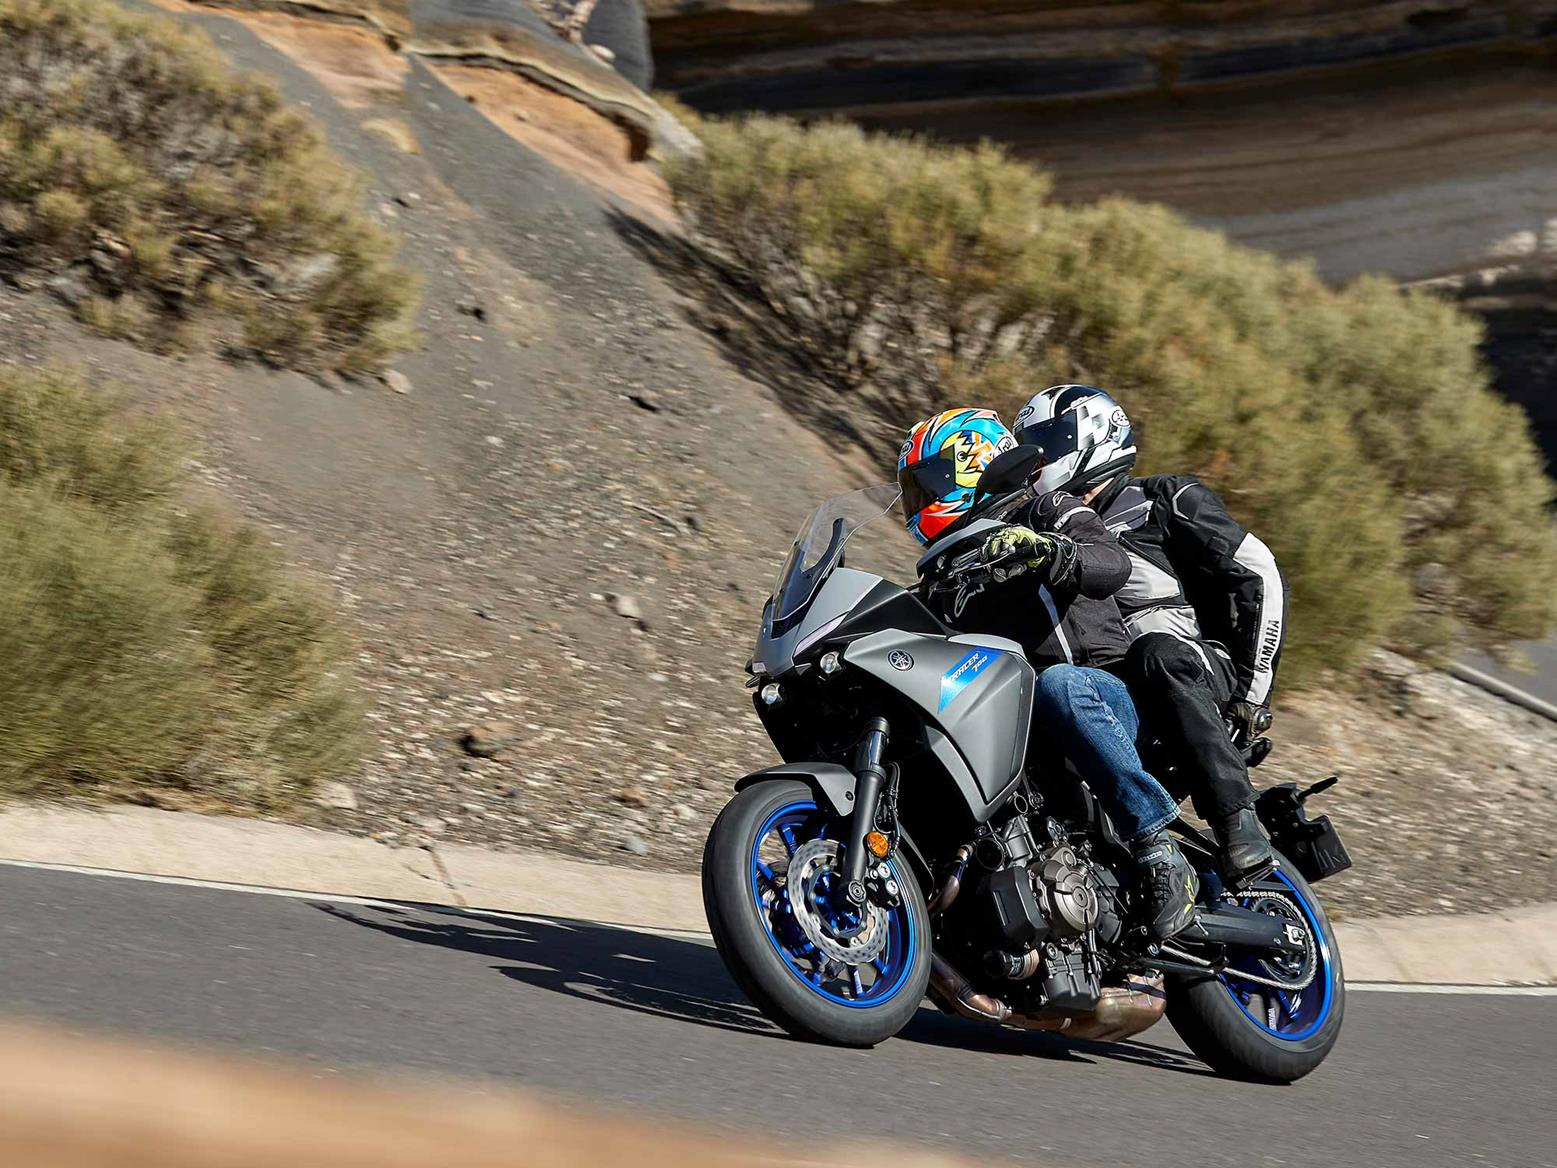 Riding the Yamaha Tracer 700 with a pillion